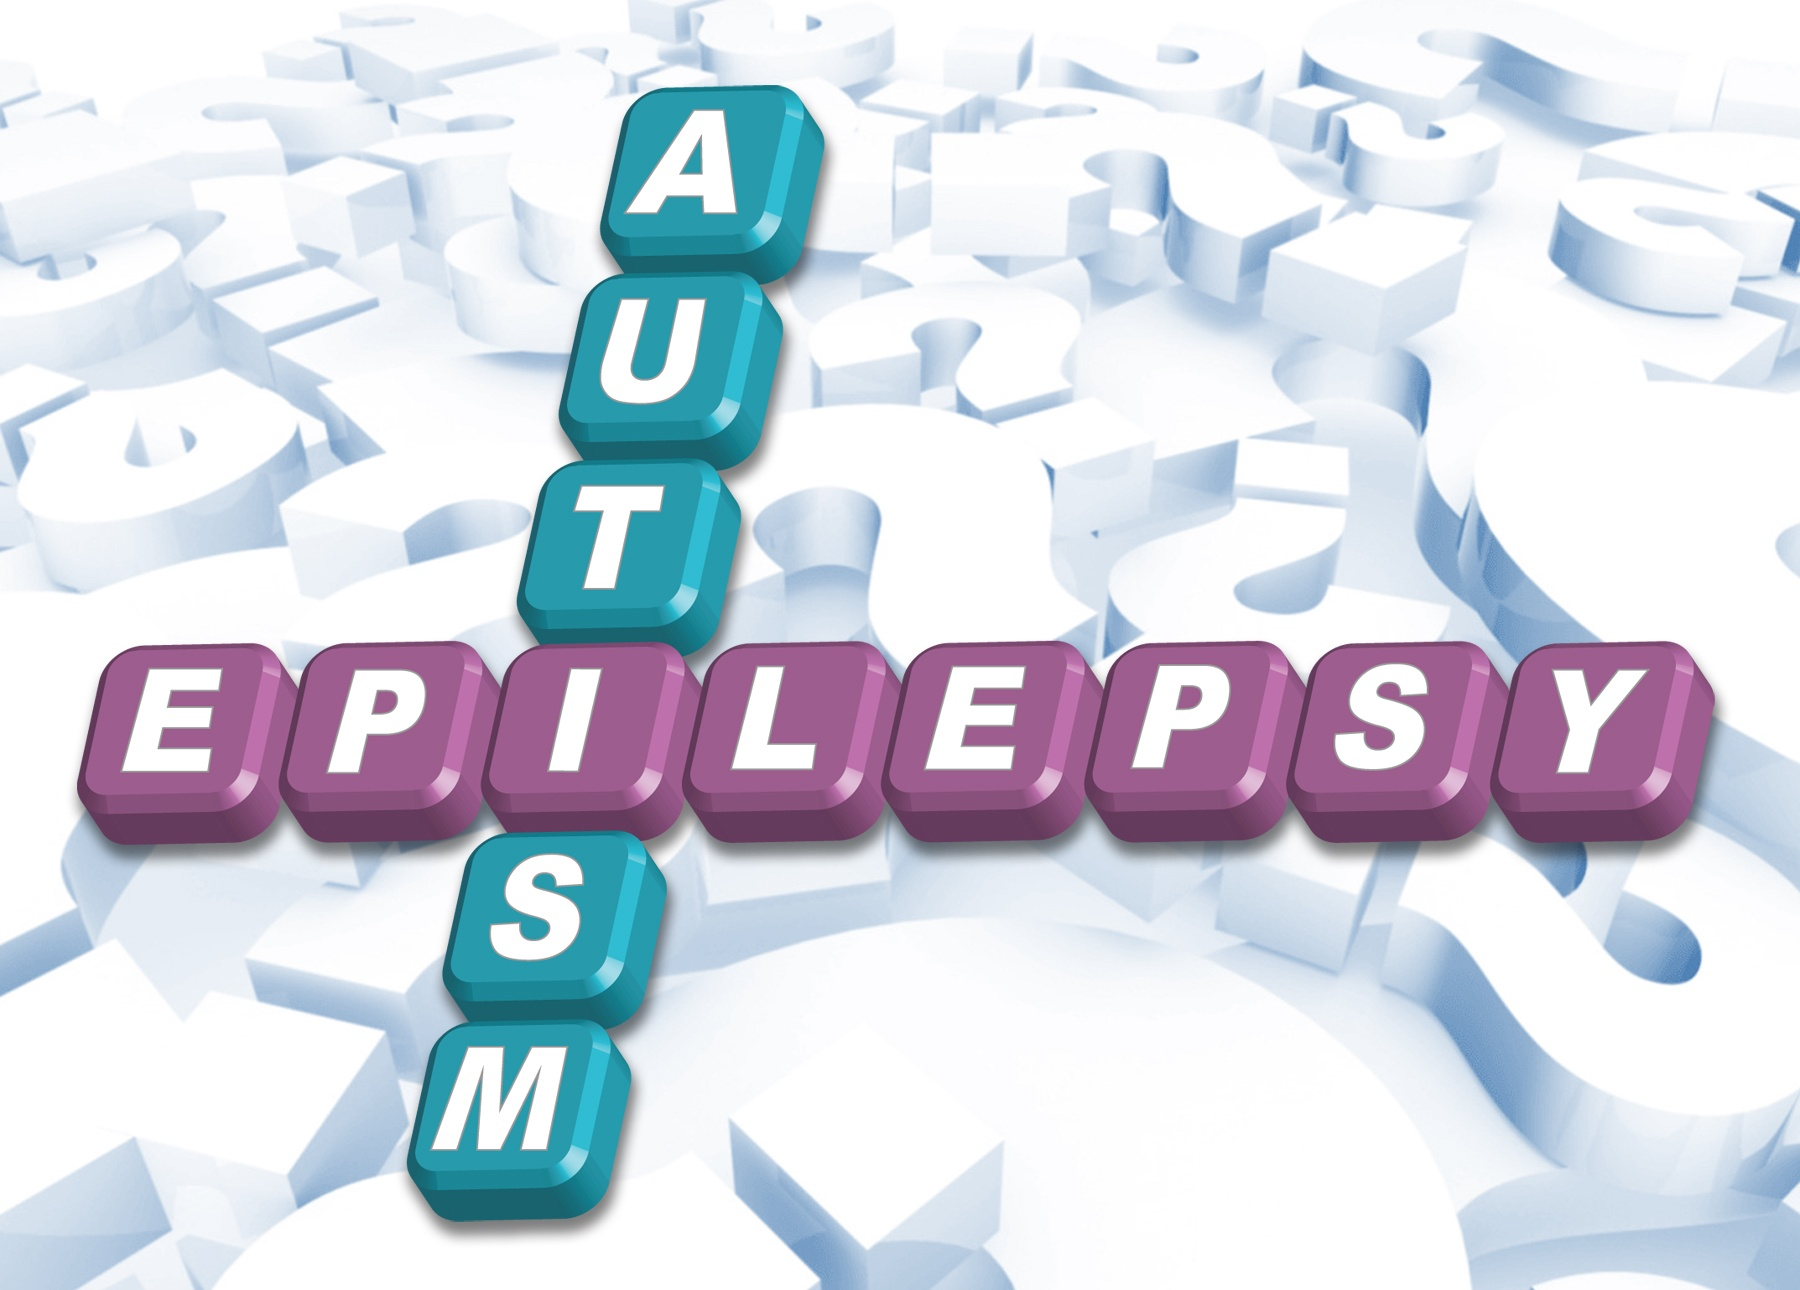 A new standard in care for Epilepsy in Autism Spectrum Disorders